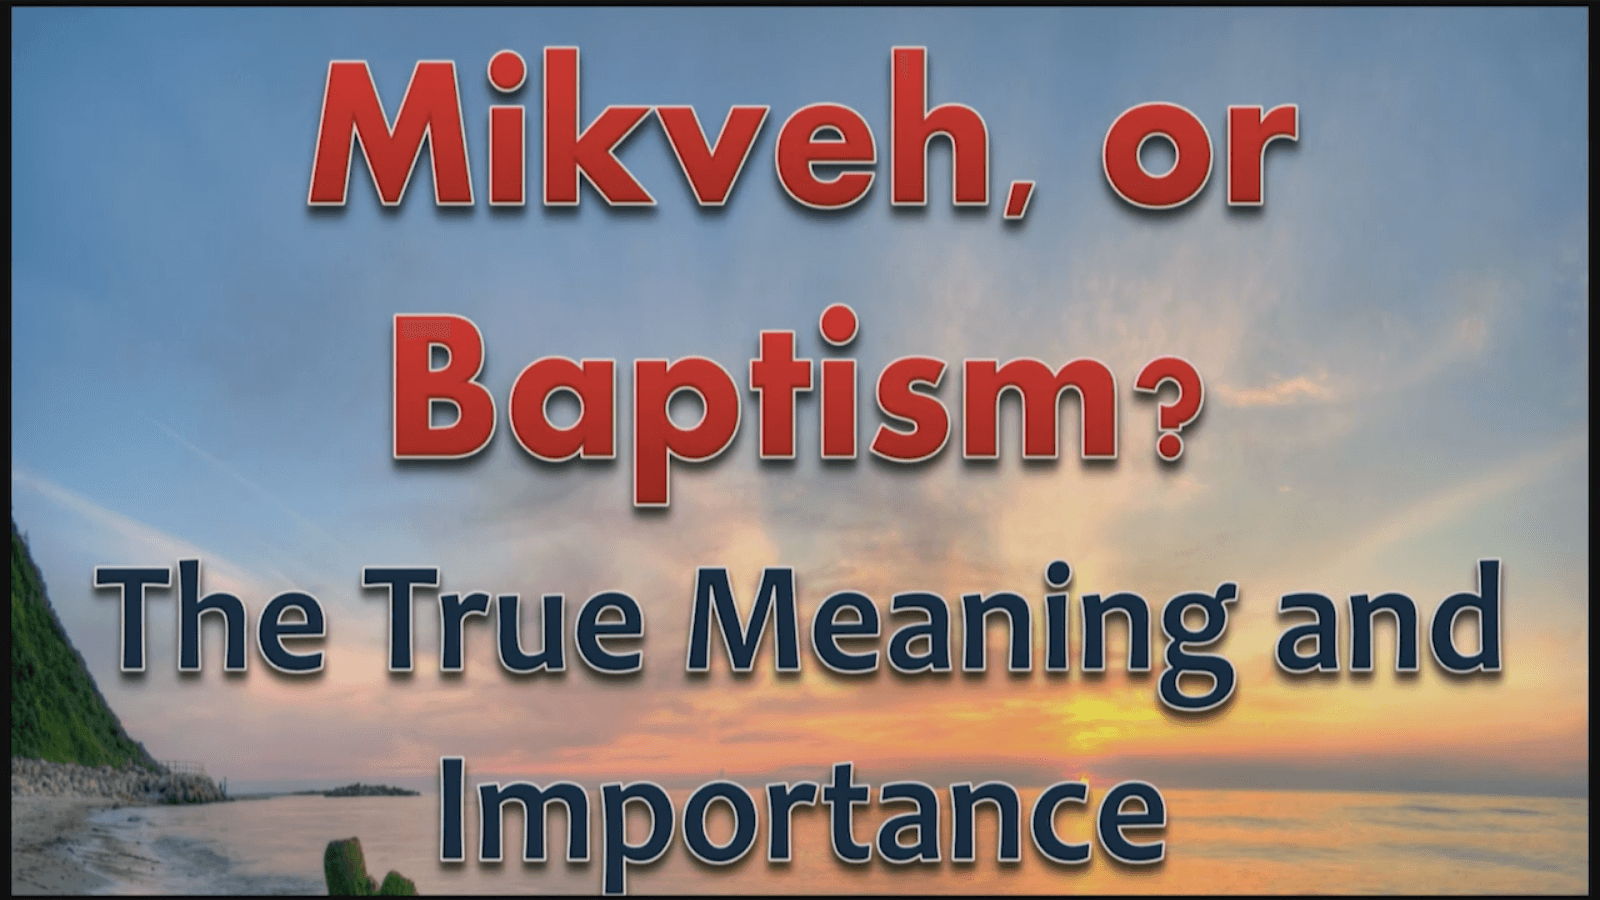 Mikveh or Baptism? The True Meaning and Importance